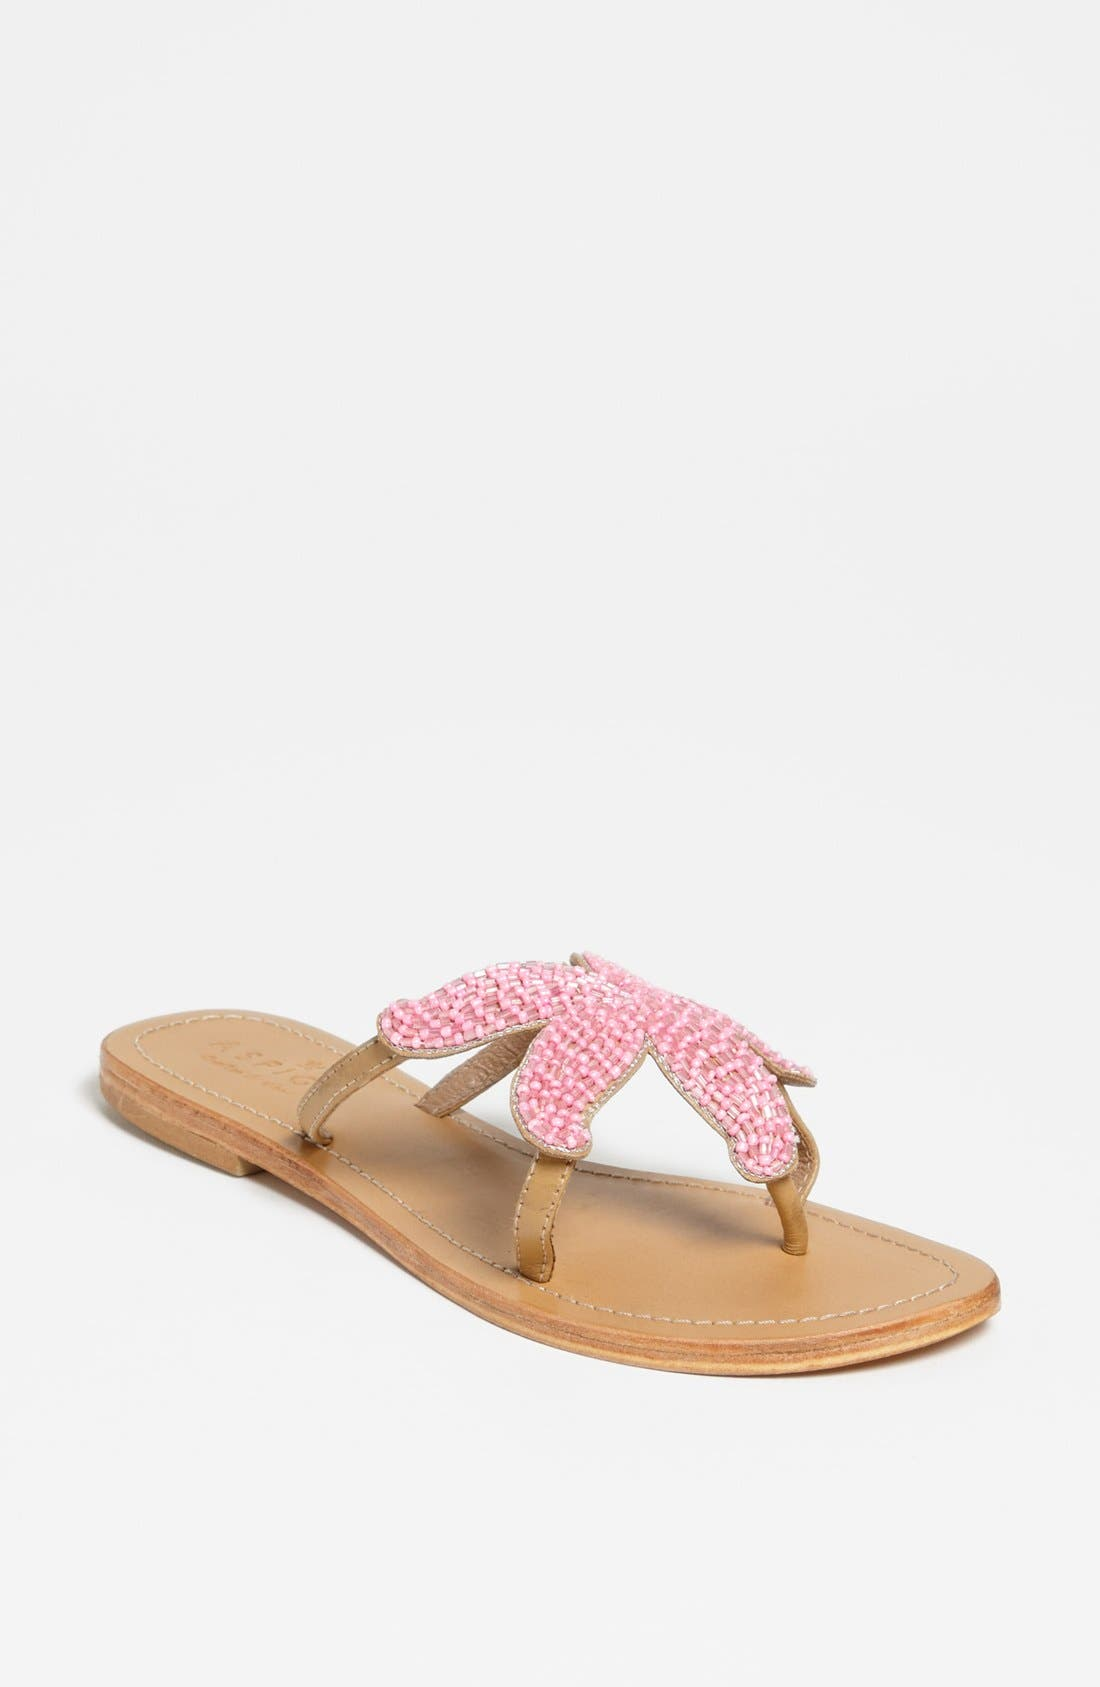 Alternate Image 1 Selected - Aspiga 'Starfish' Sandal